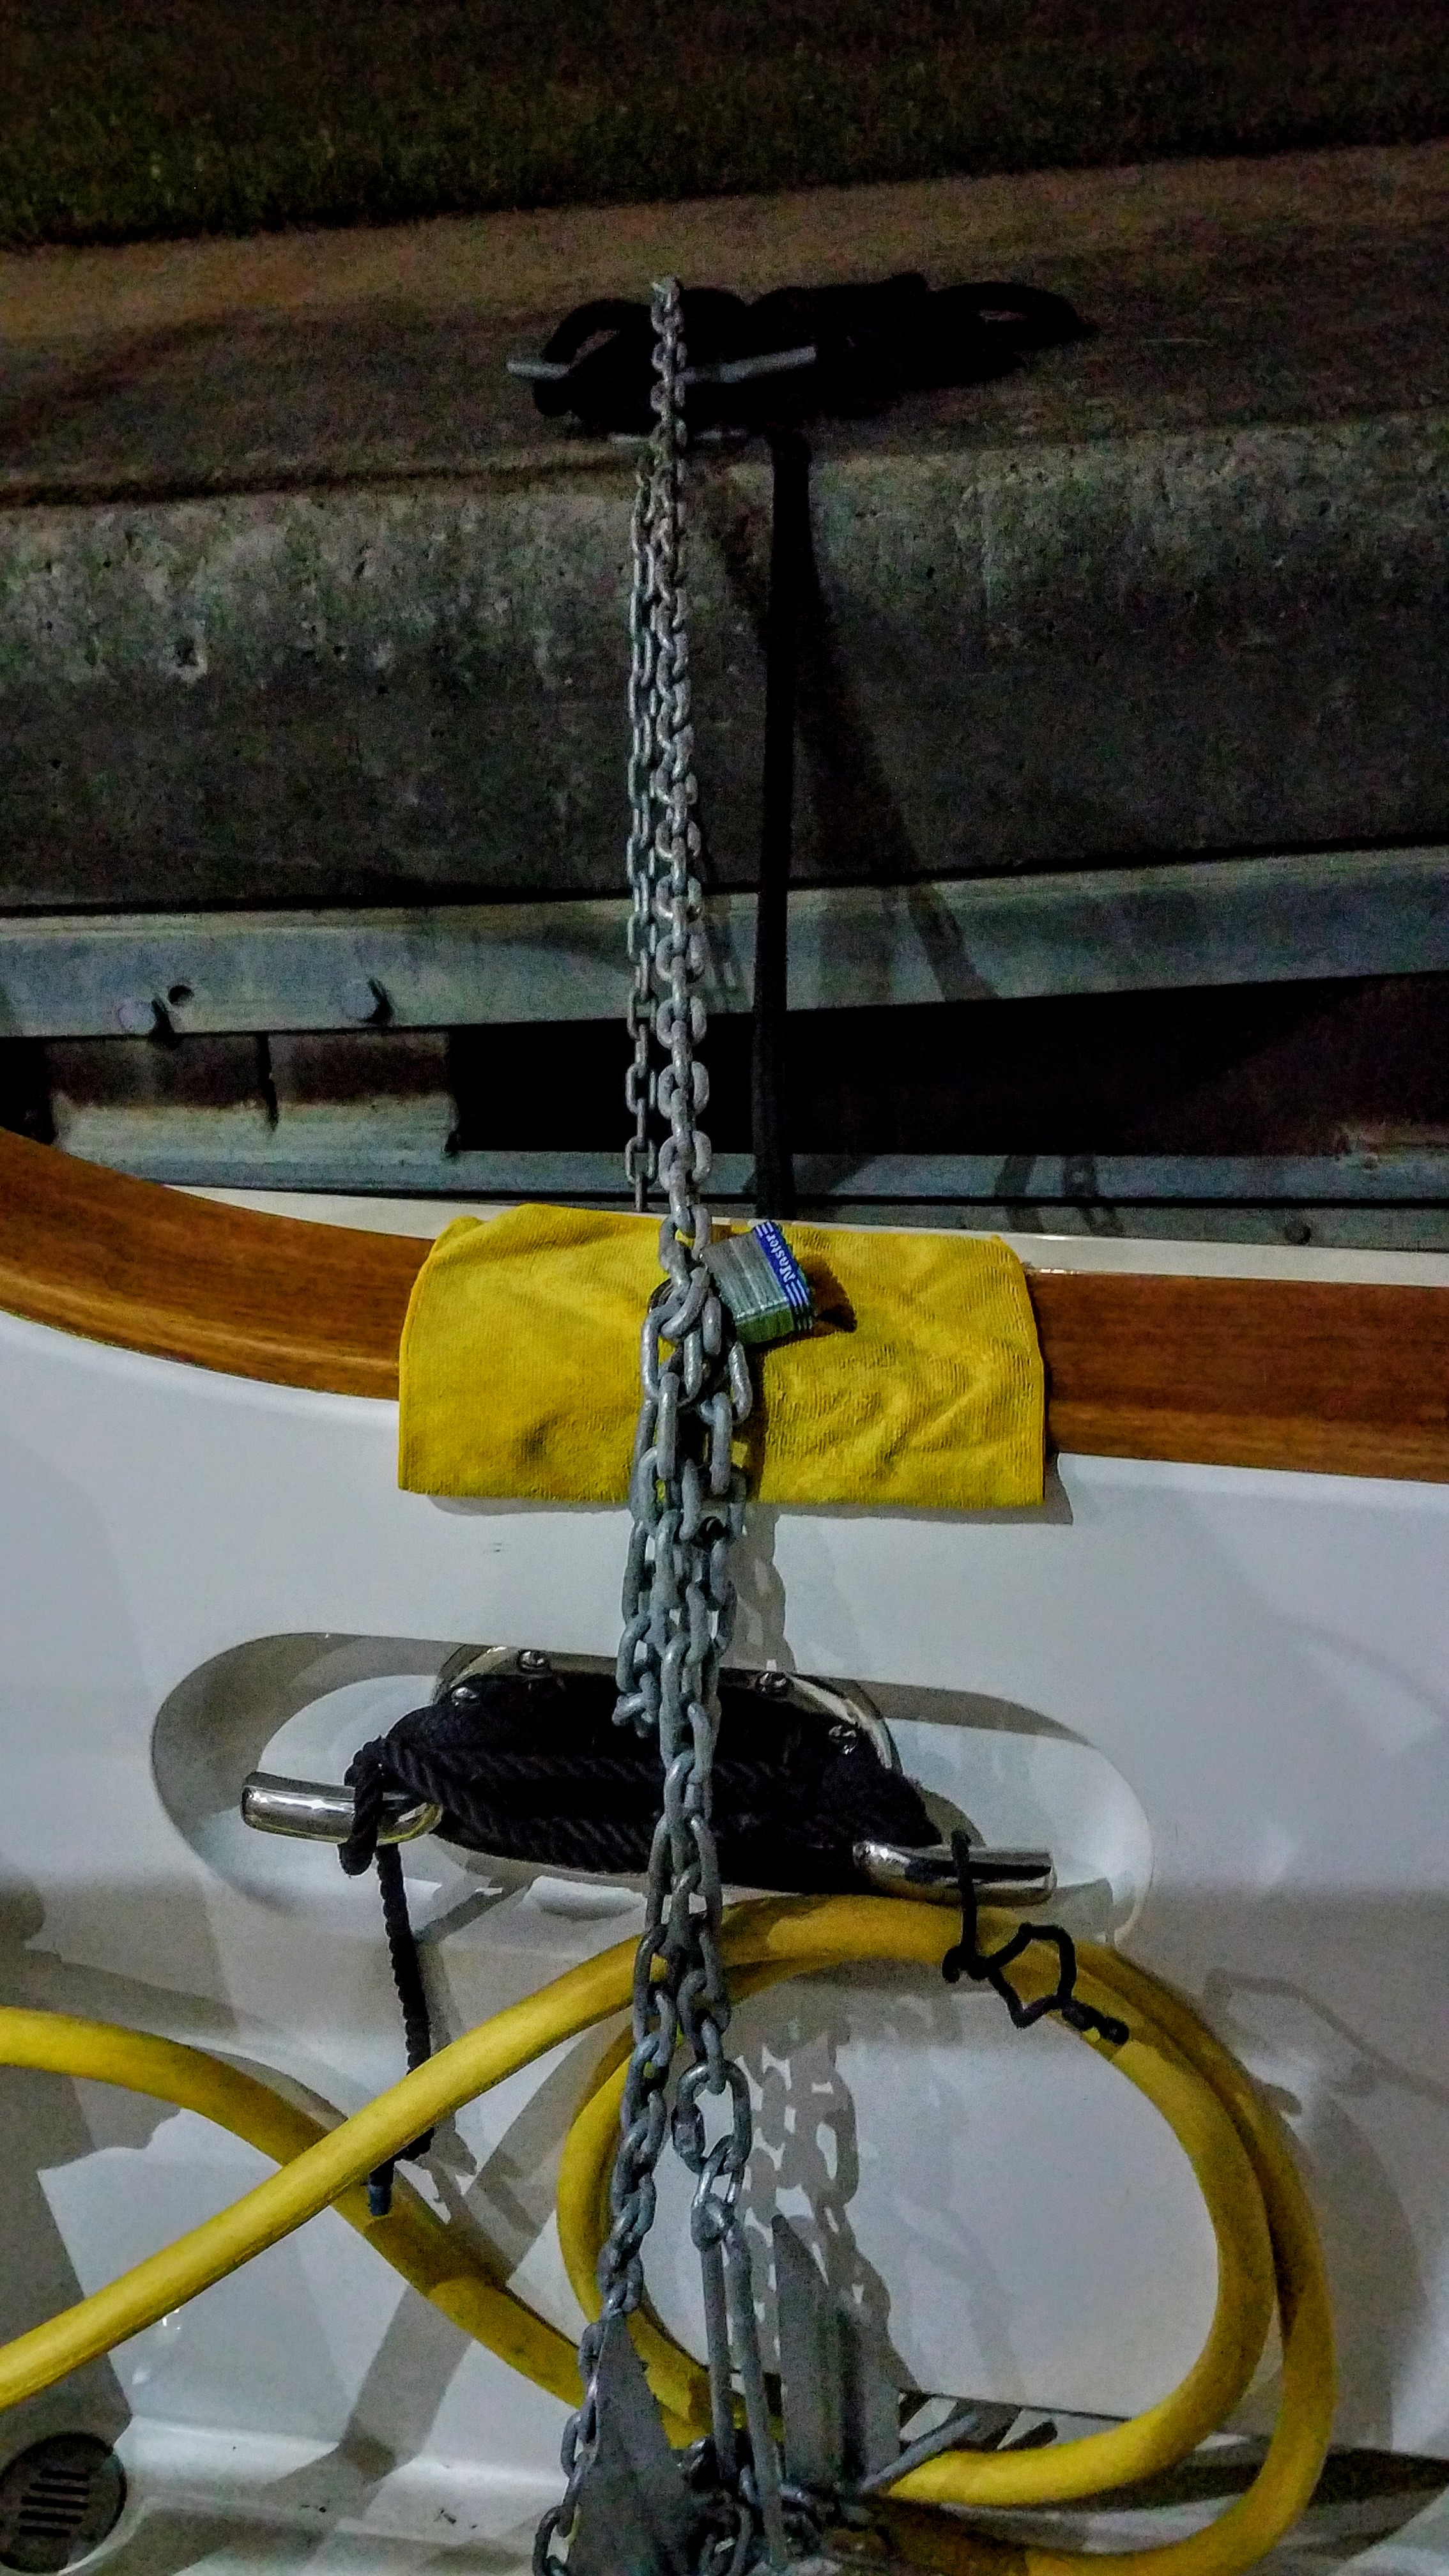 Actually had to lock up the boat tonight. We used the anchor chain from the tender and a pad lock…good grief!